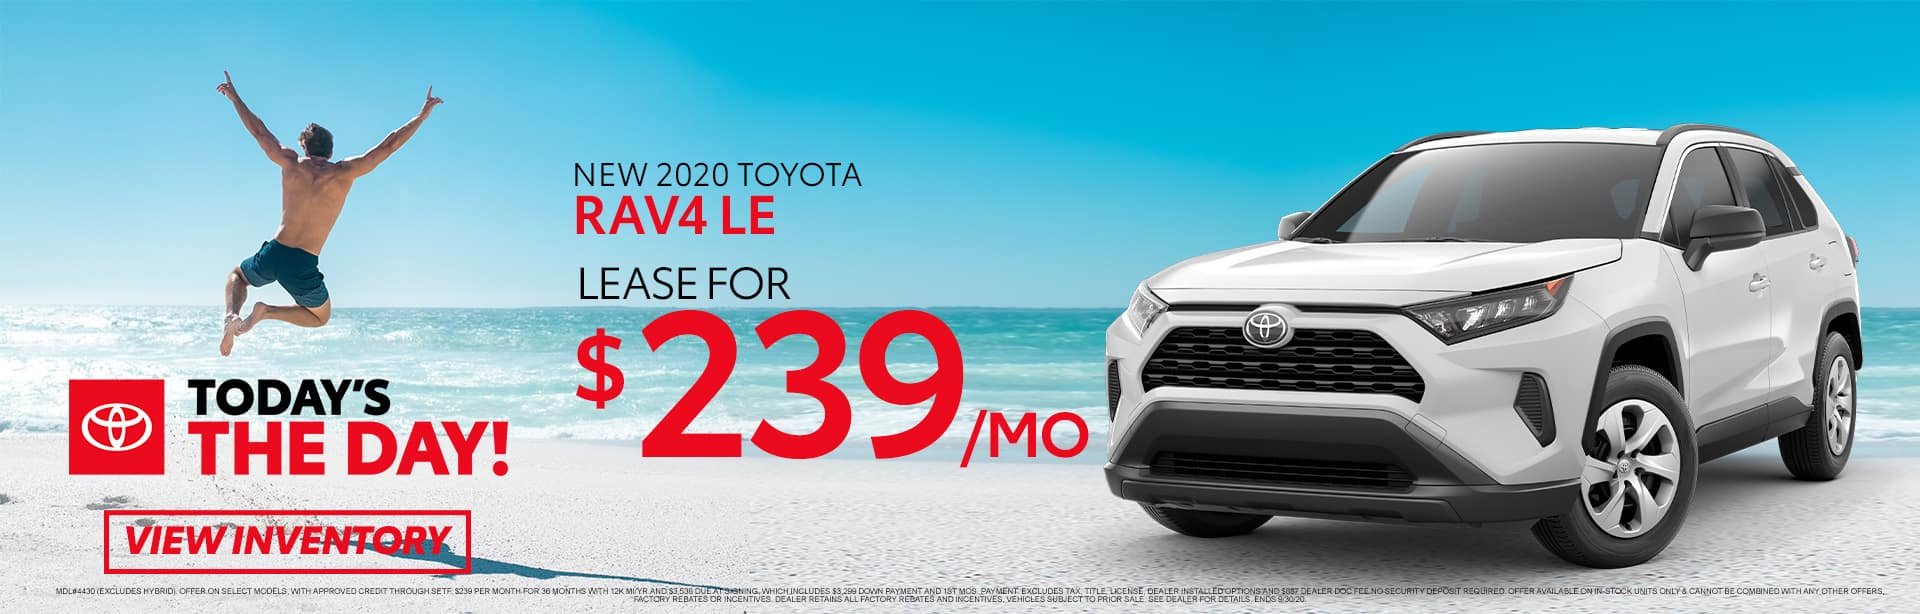 New 2020 Toyota RAV4 at Toyota of Fort Walton Beach!